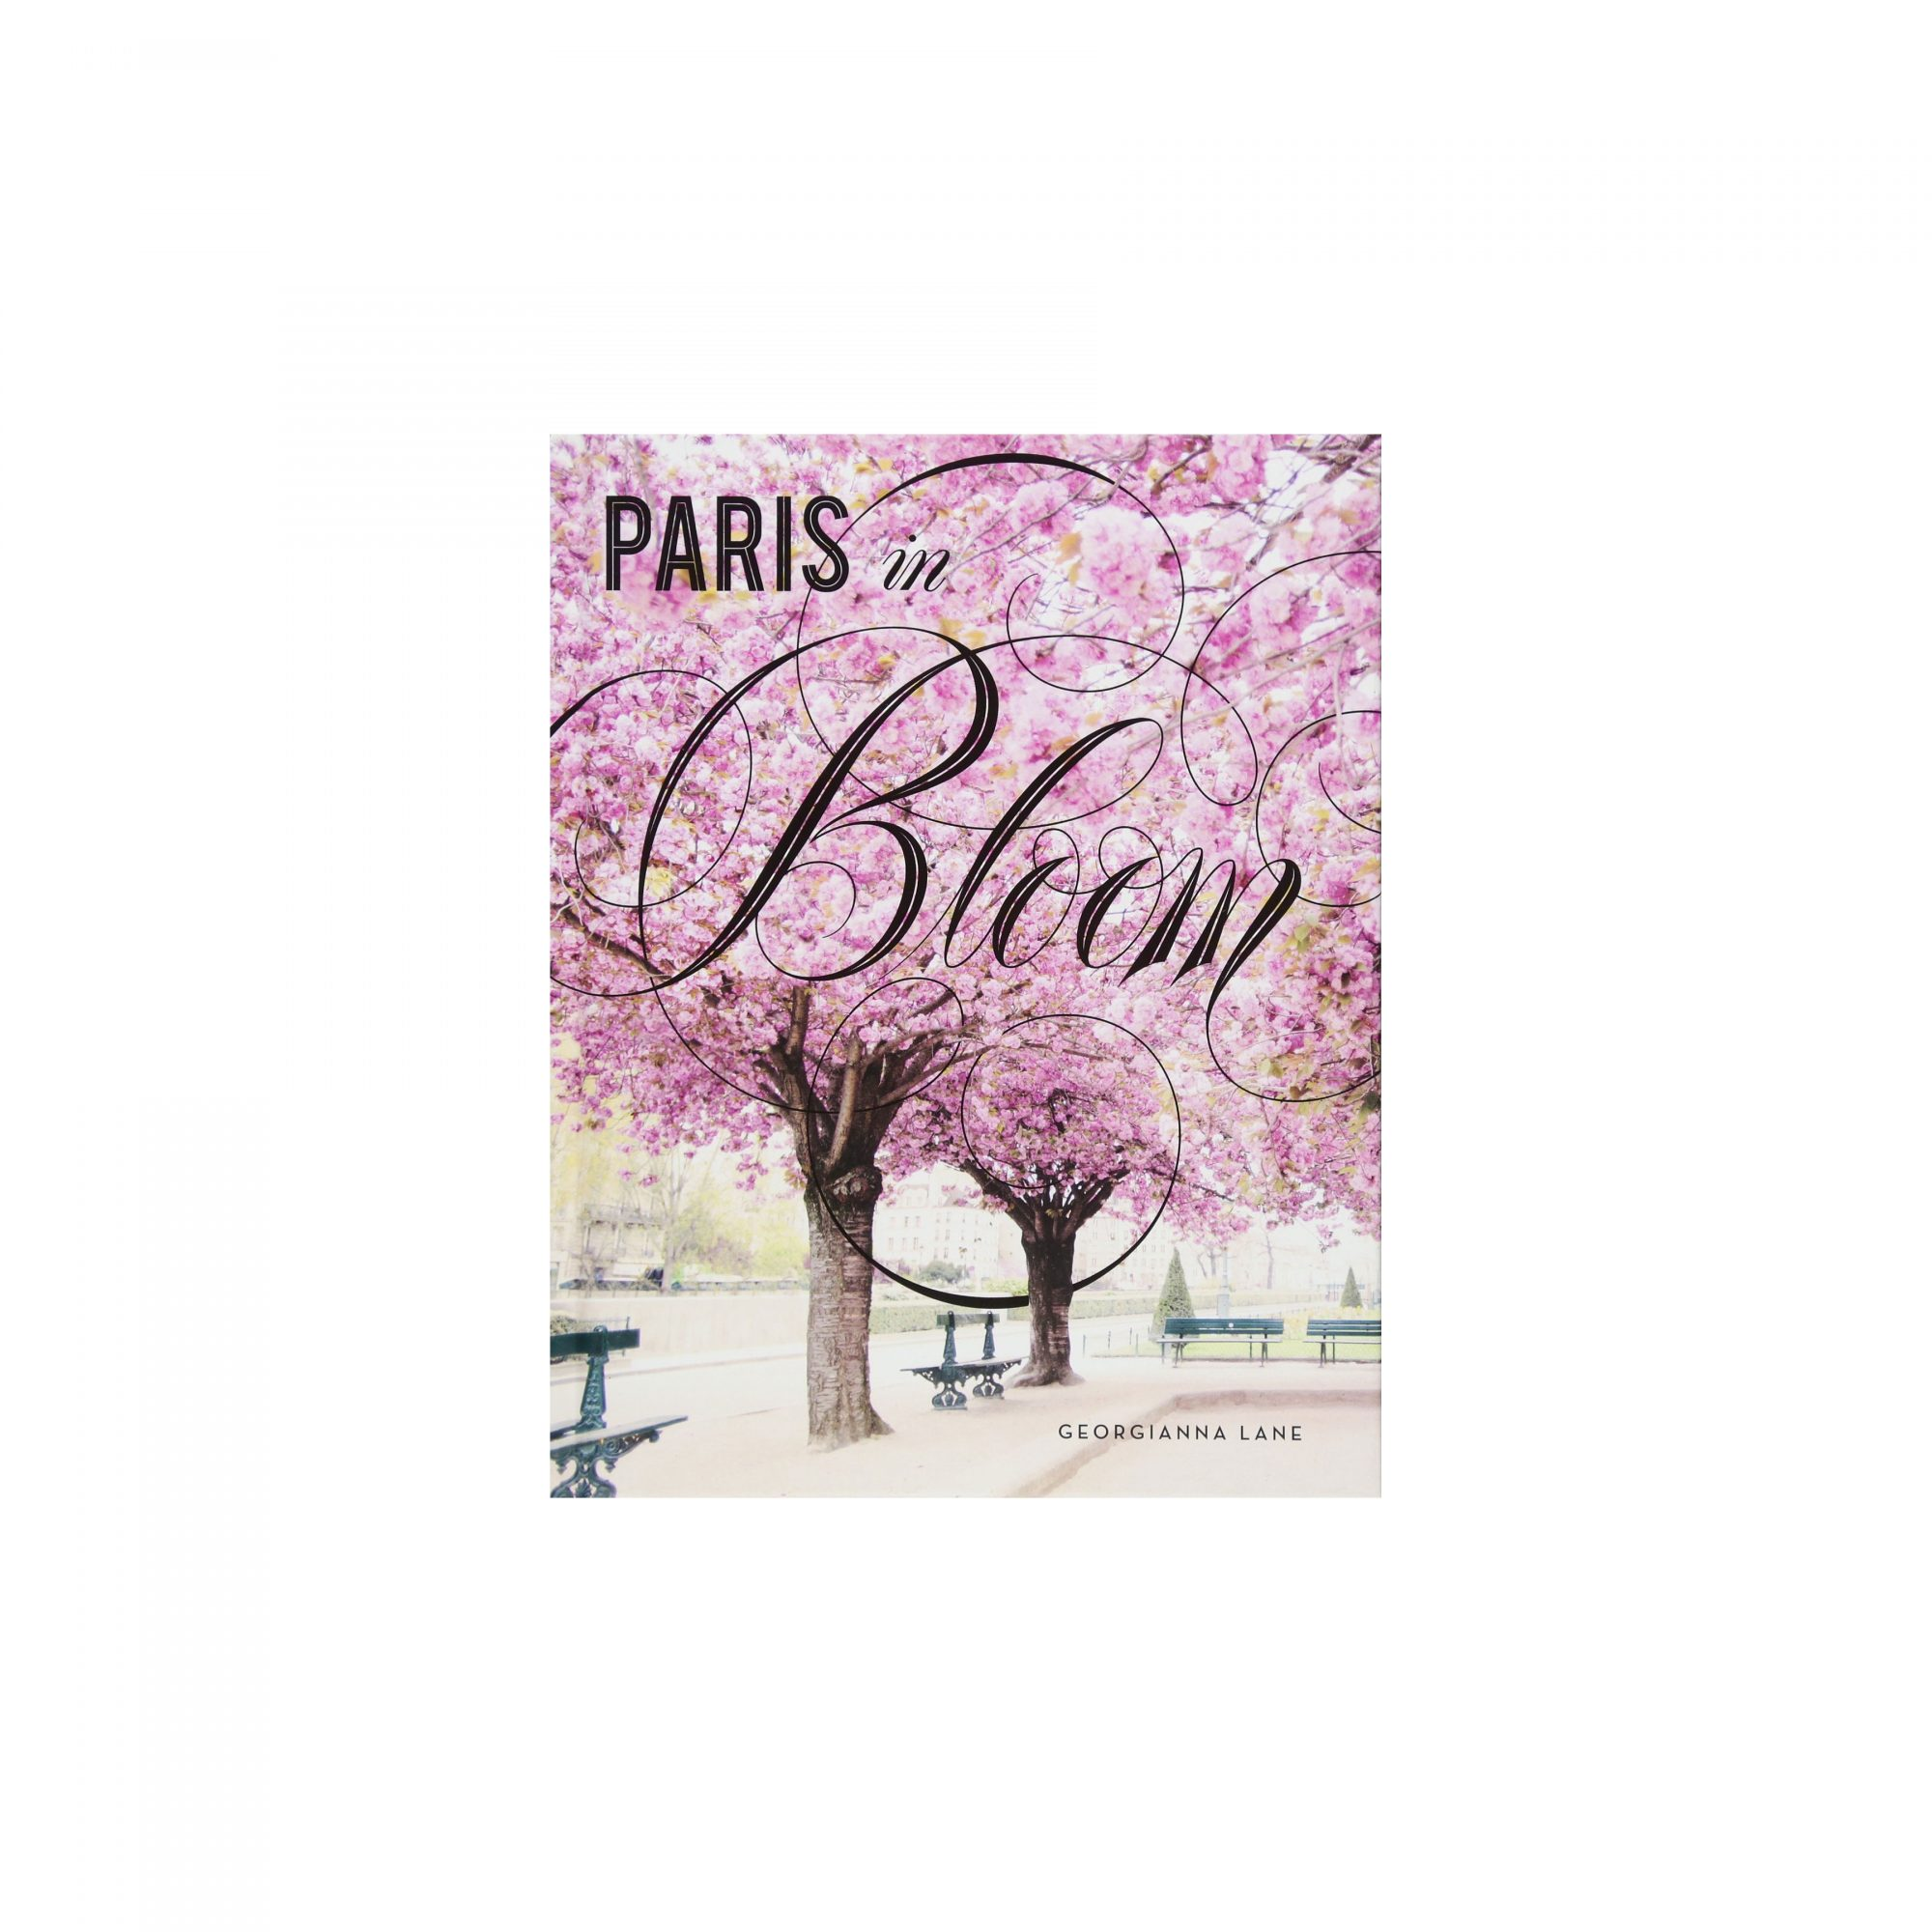 Paris in Bloom, by Georgianna Lane